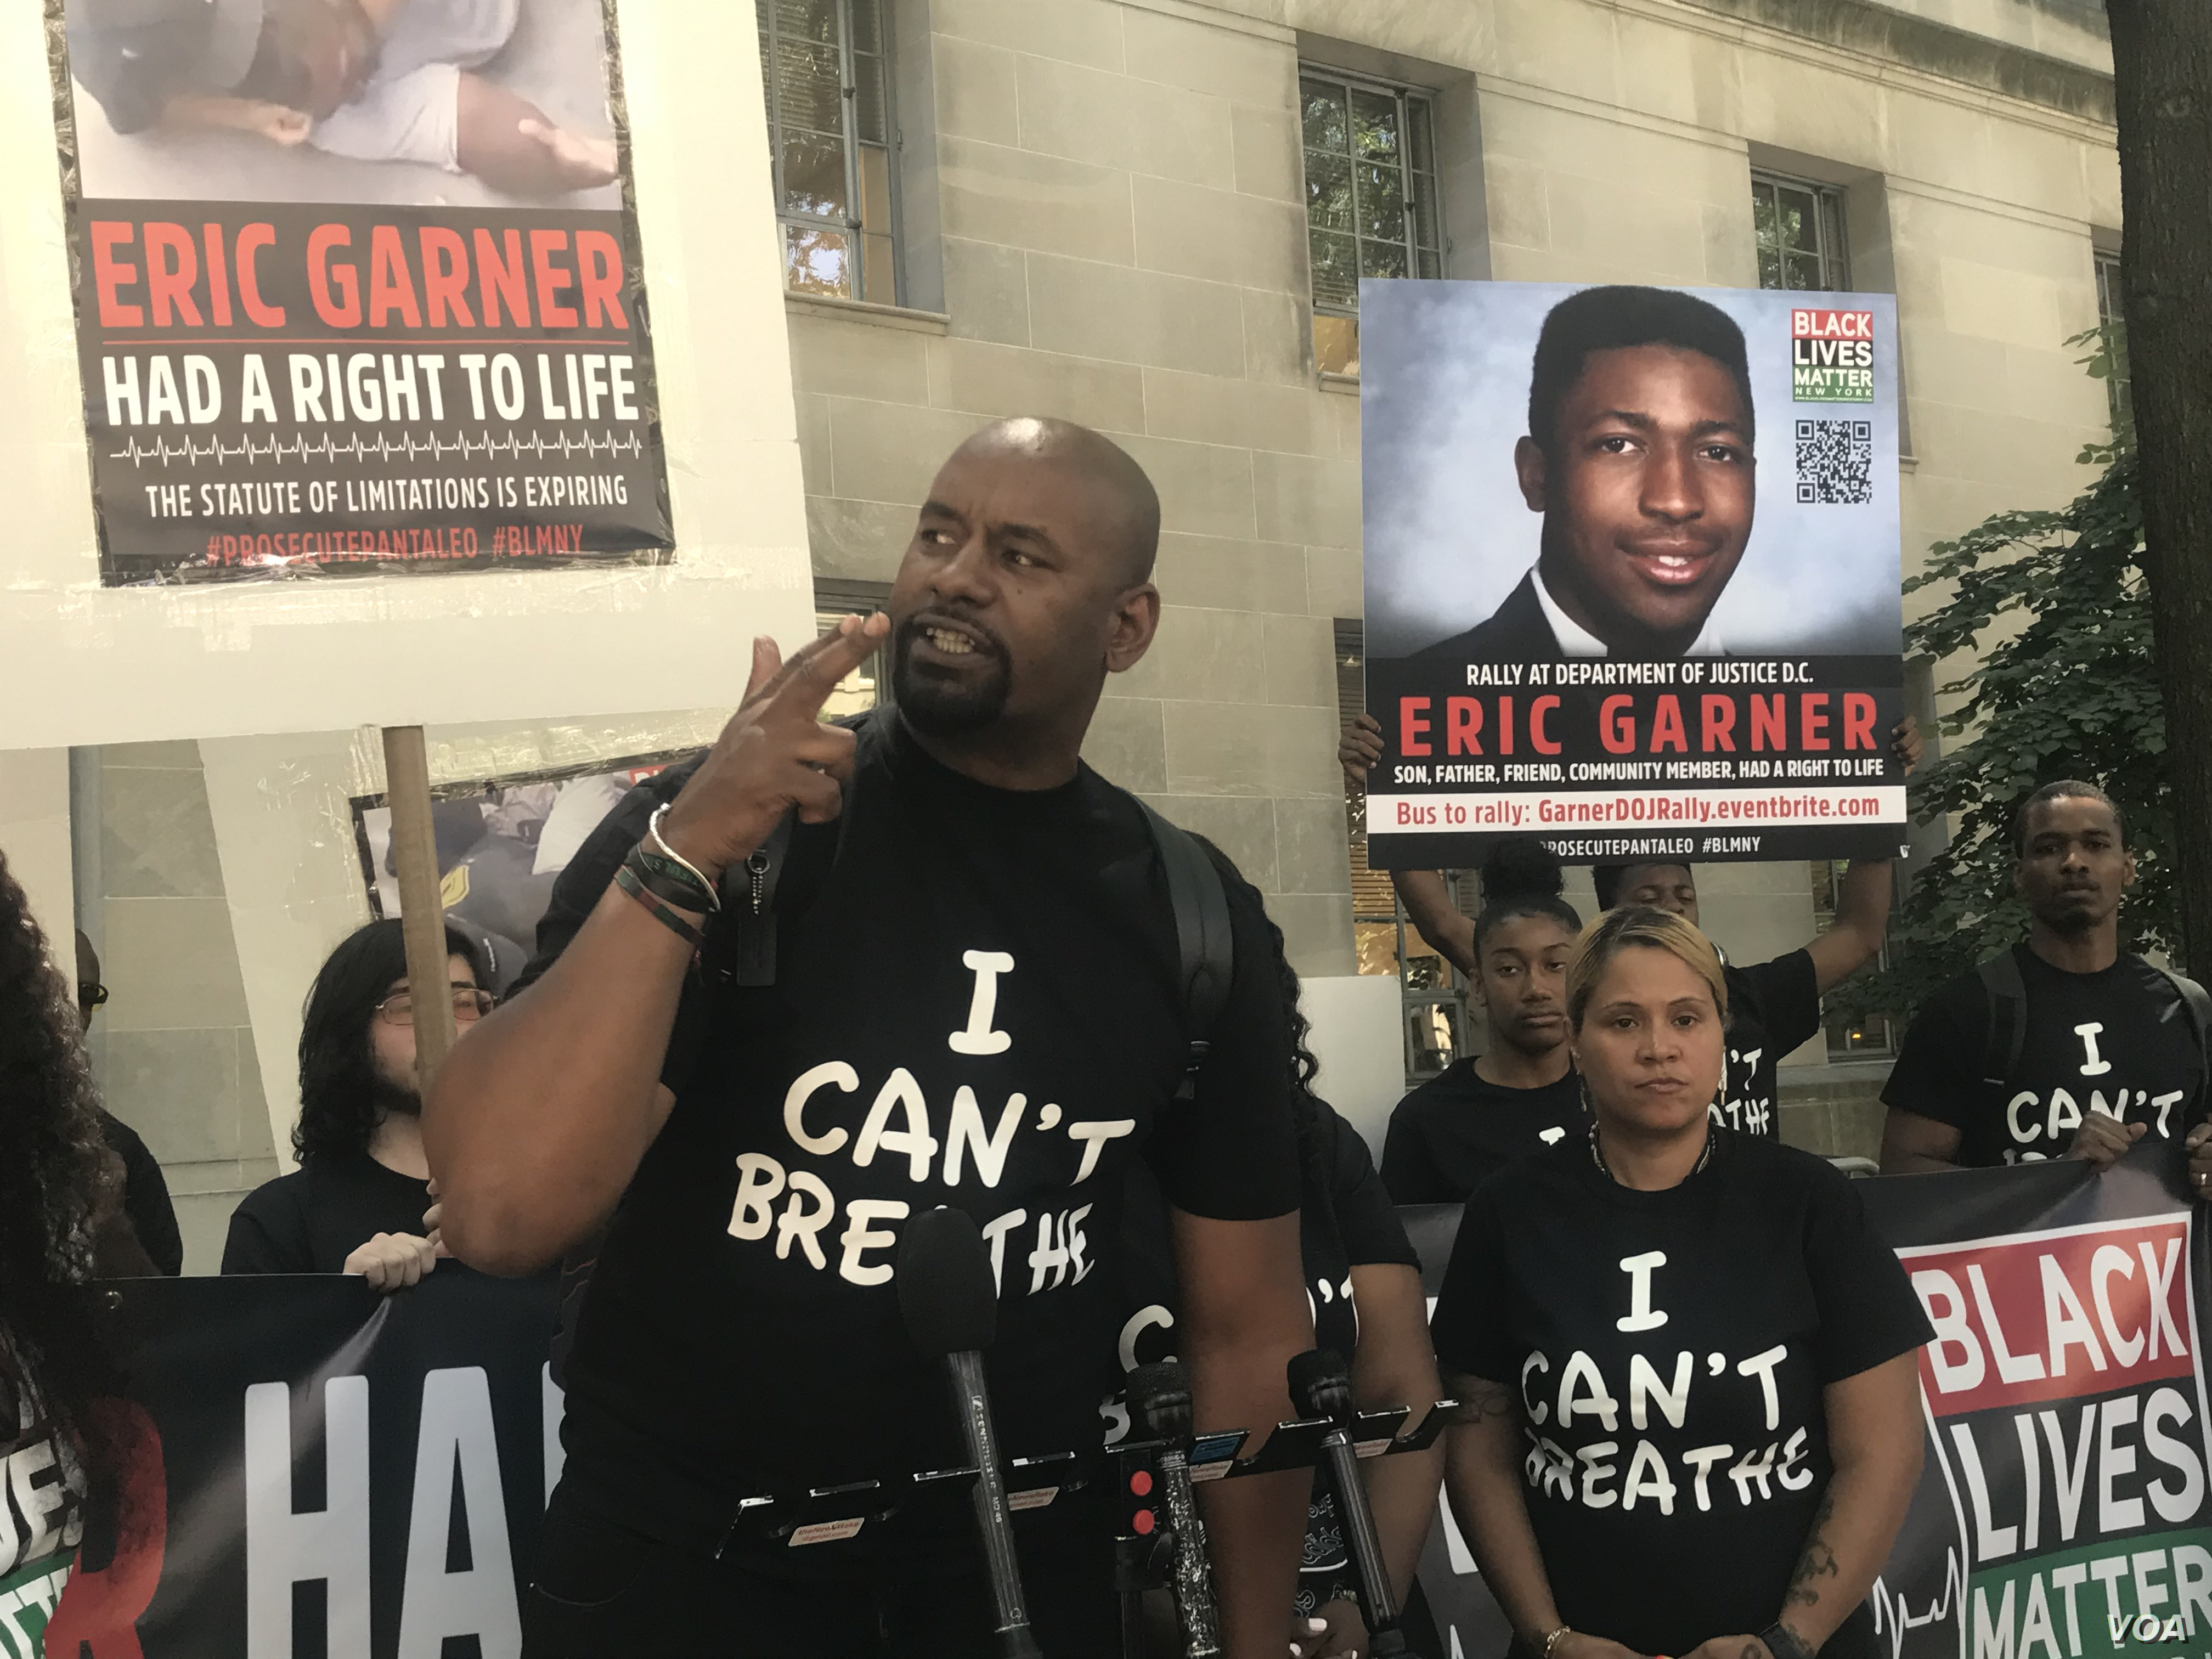 Black Lives Matter of Greater New York Chairman Hawk Newsome gestures at Monday's rally, wearing a shirt printed with Eric Garner's last words. (Leslie Bonilla/VOA News)